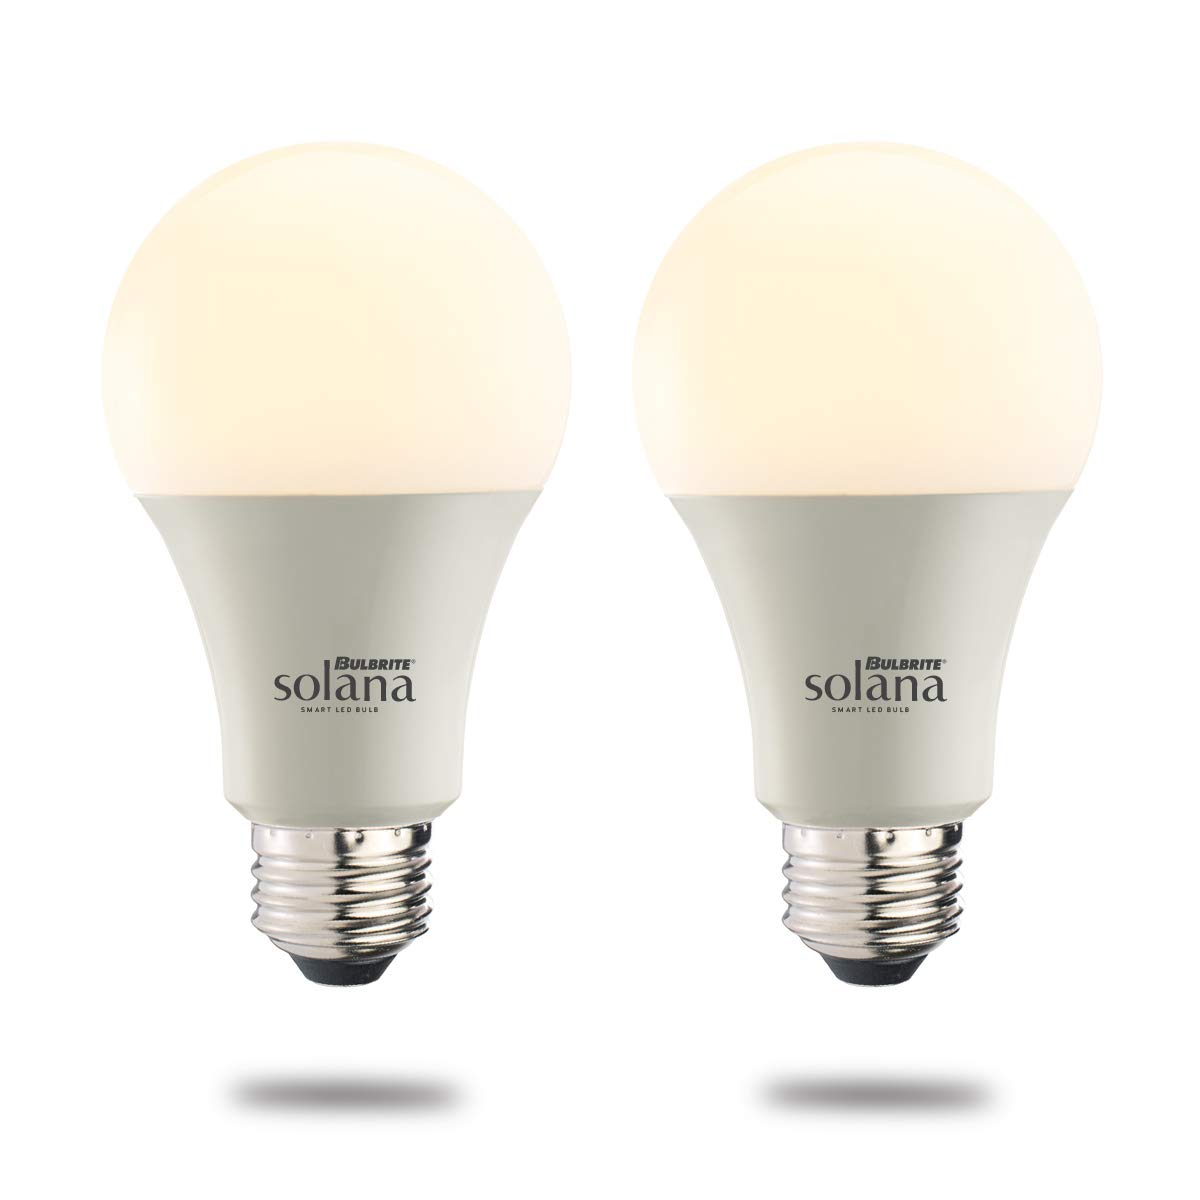 60 Watt Equivalent Frost Bulbrite Solana A19 WiFi Connectd LED Smart Light Bulb